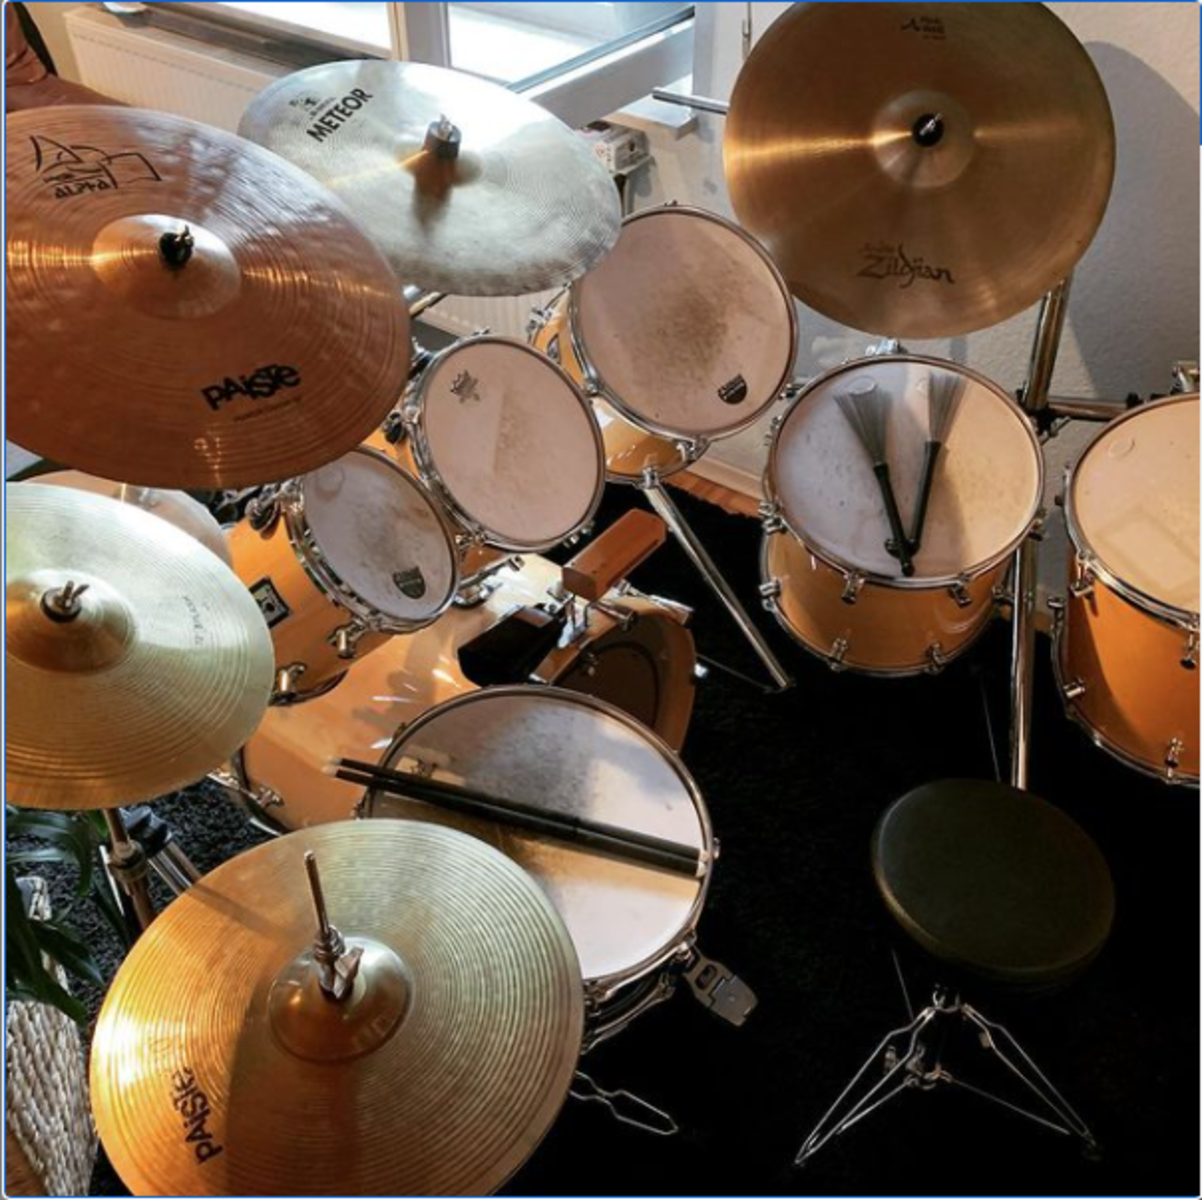 Photo of Pearl 14x5 Chad Smith Signature Snare Drum and more gear